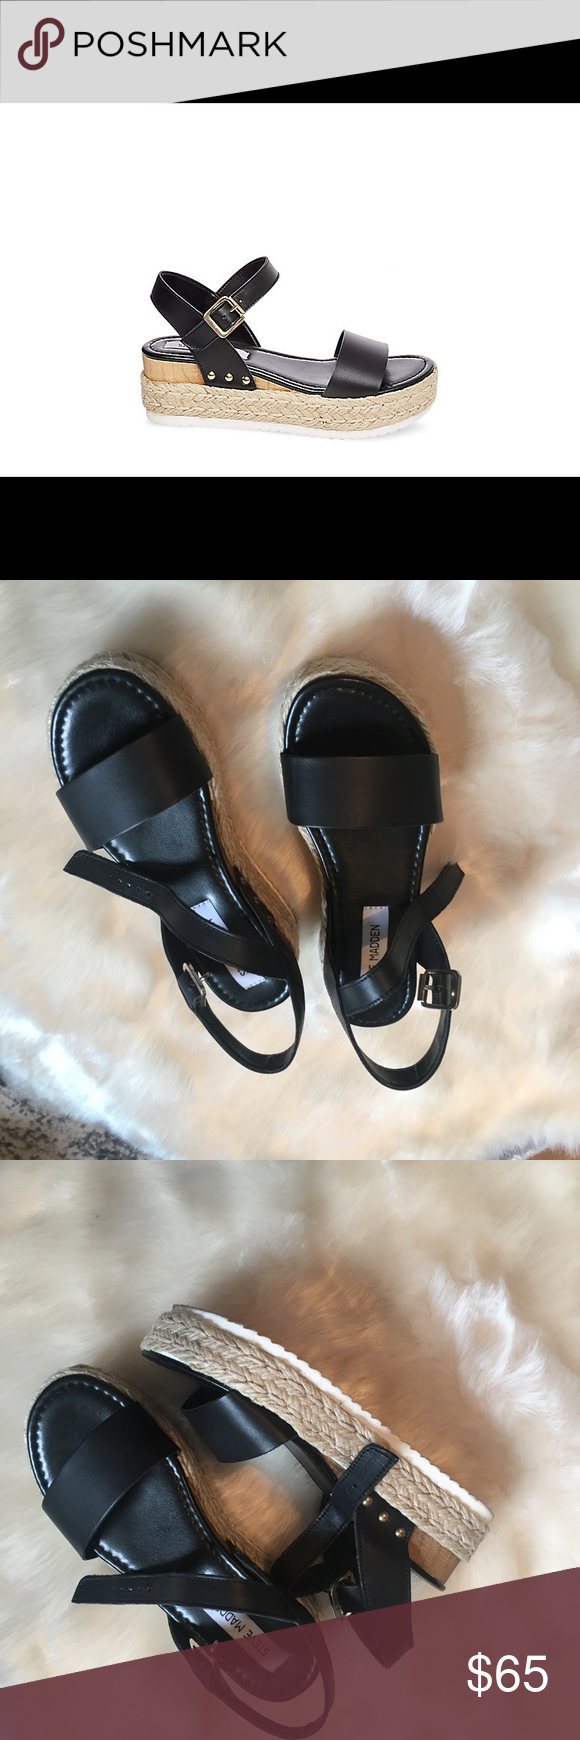 1a7c564fa14 Steve Madden Chiara Sandal New! Worn only one time! Very comfortable ...